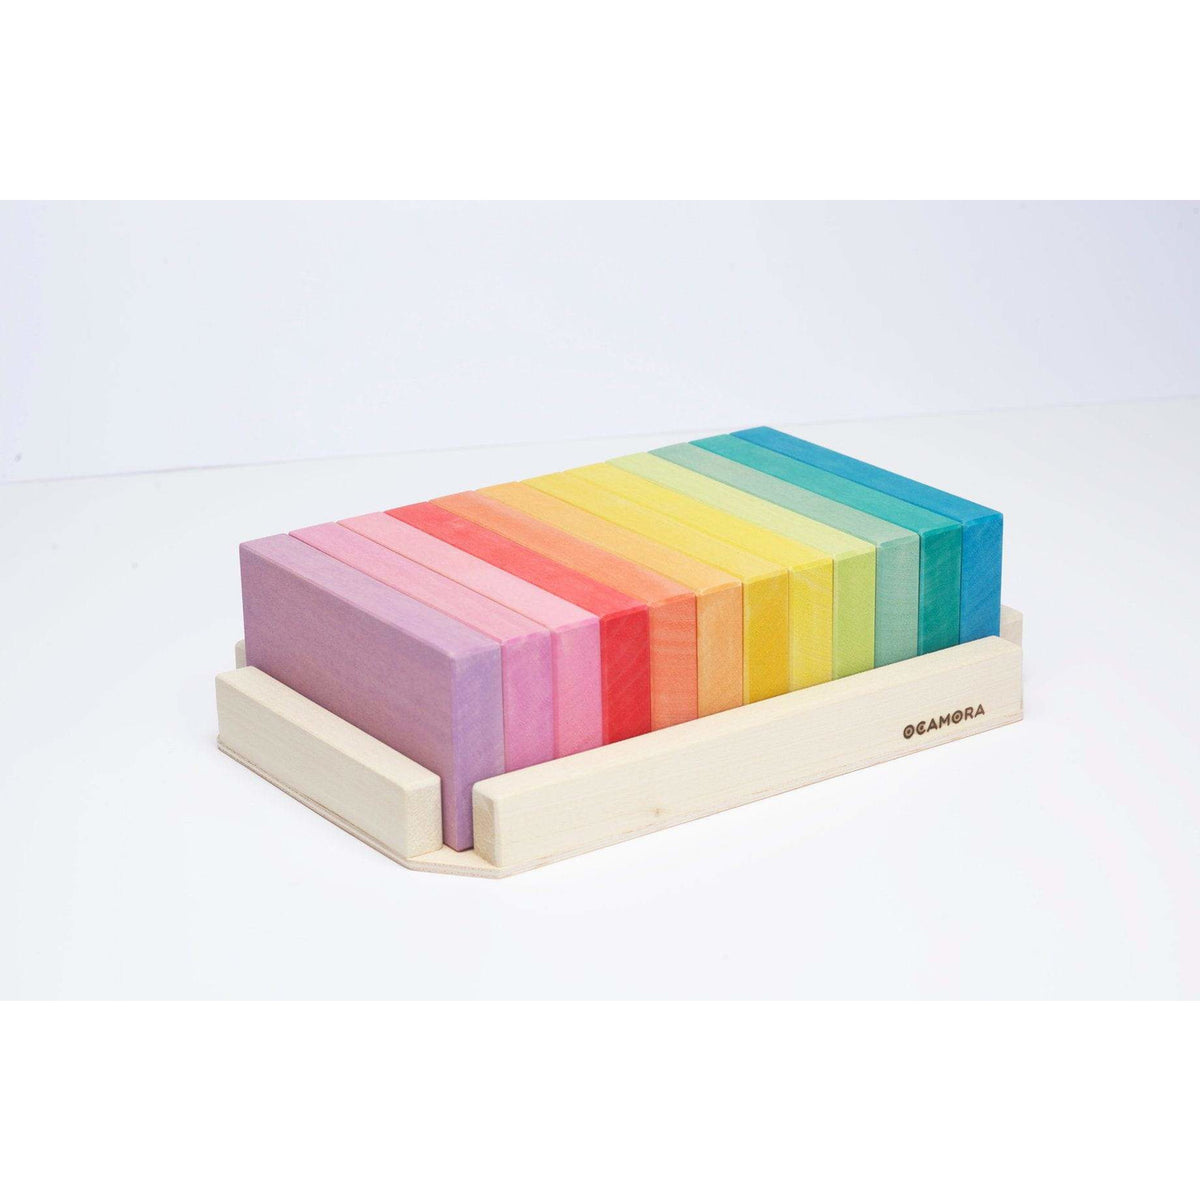 Ocamora Large Wooden Boards: Rainbow